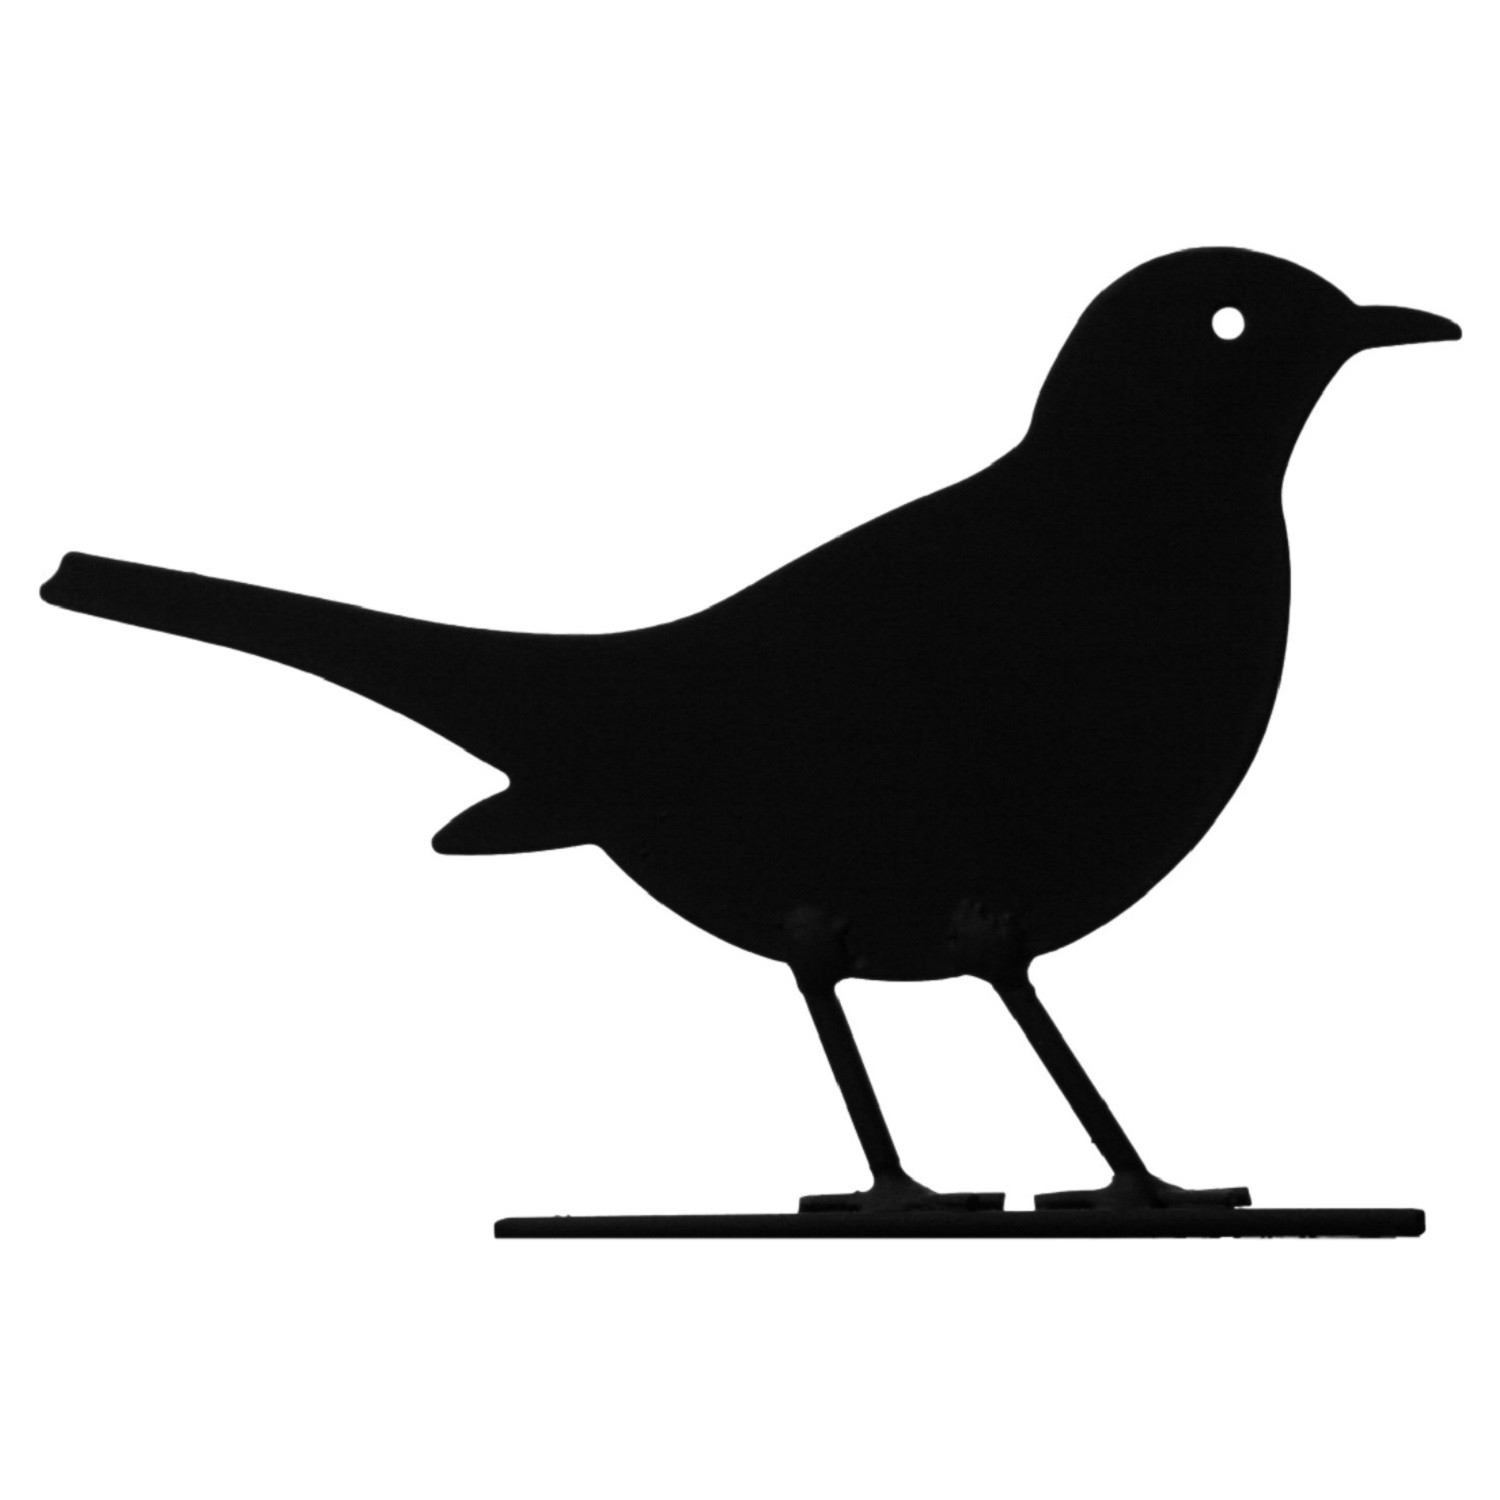 Blackbird clipart bird silhouette The Silhouette View Blue Blackbird